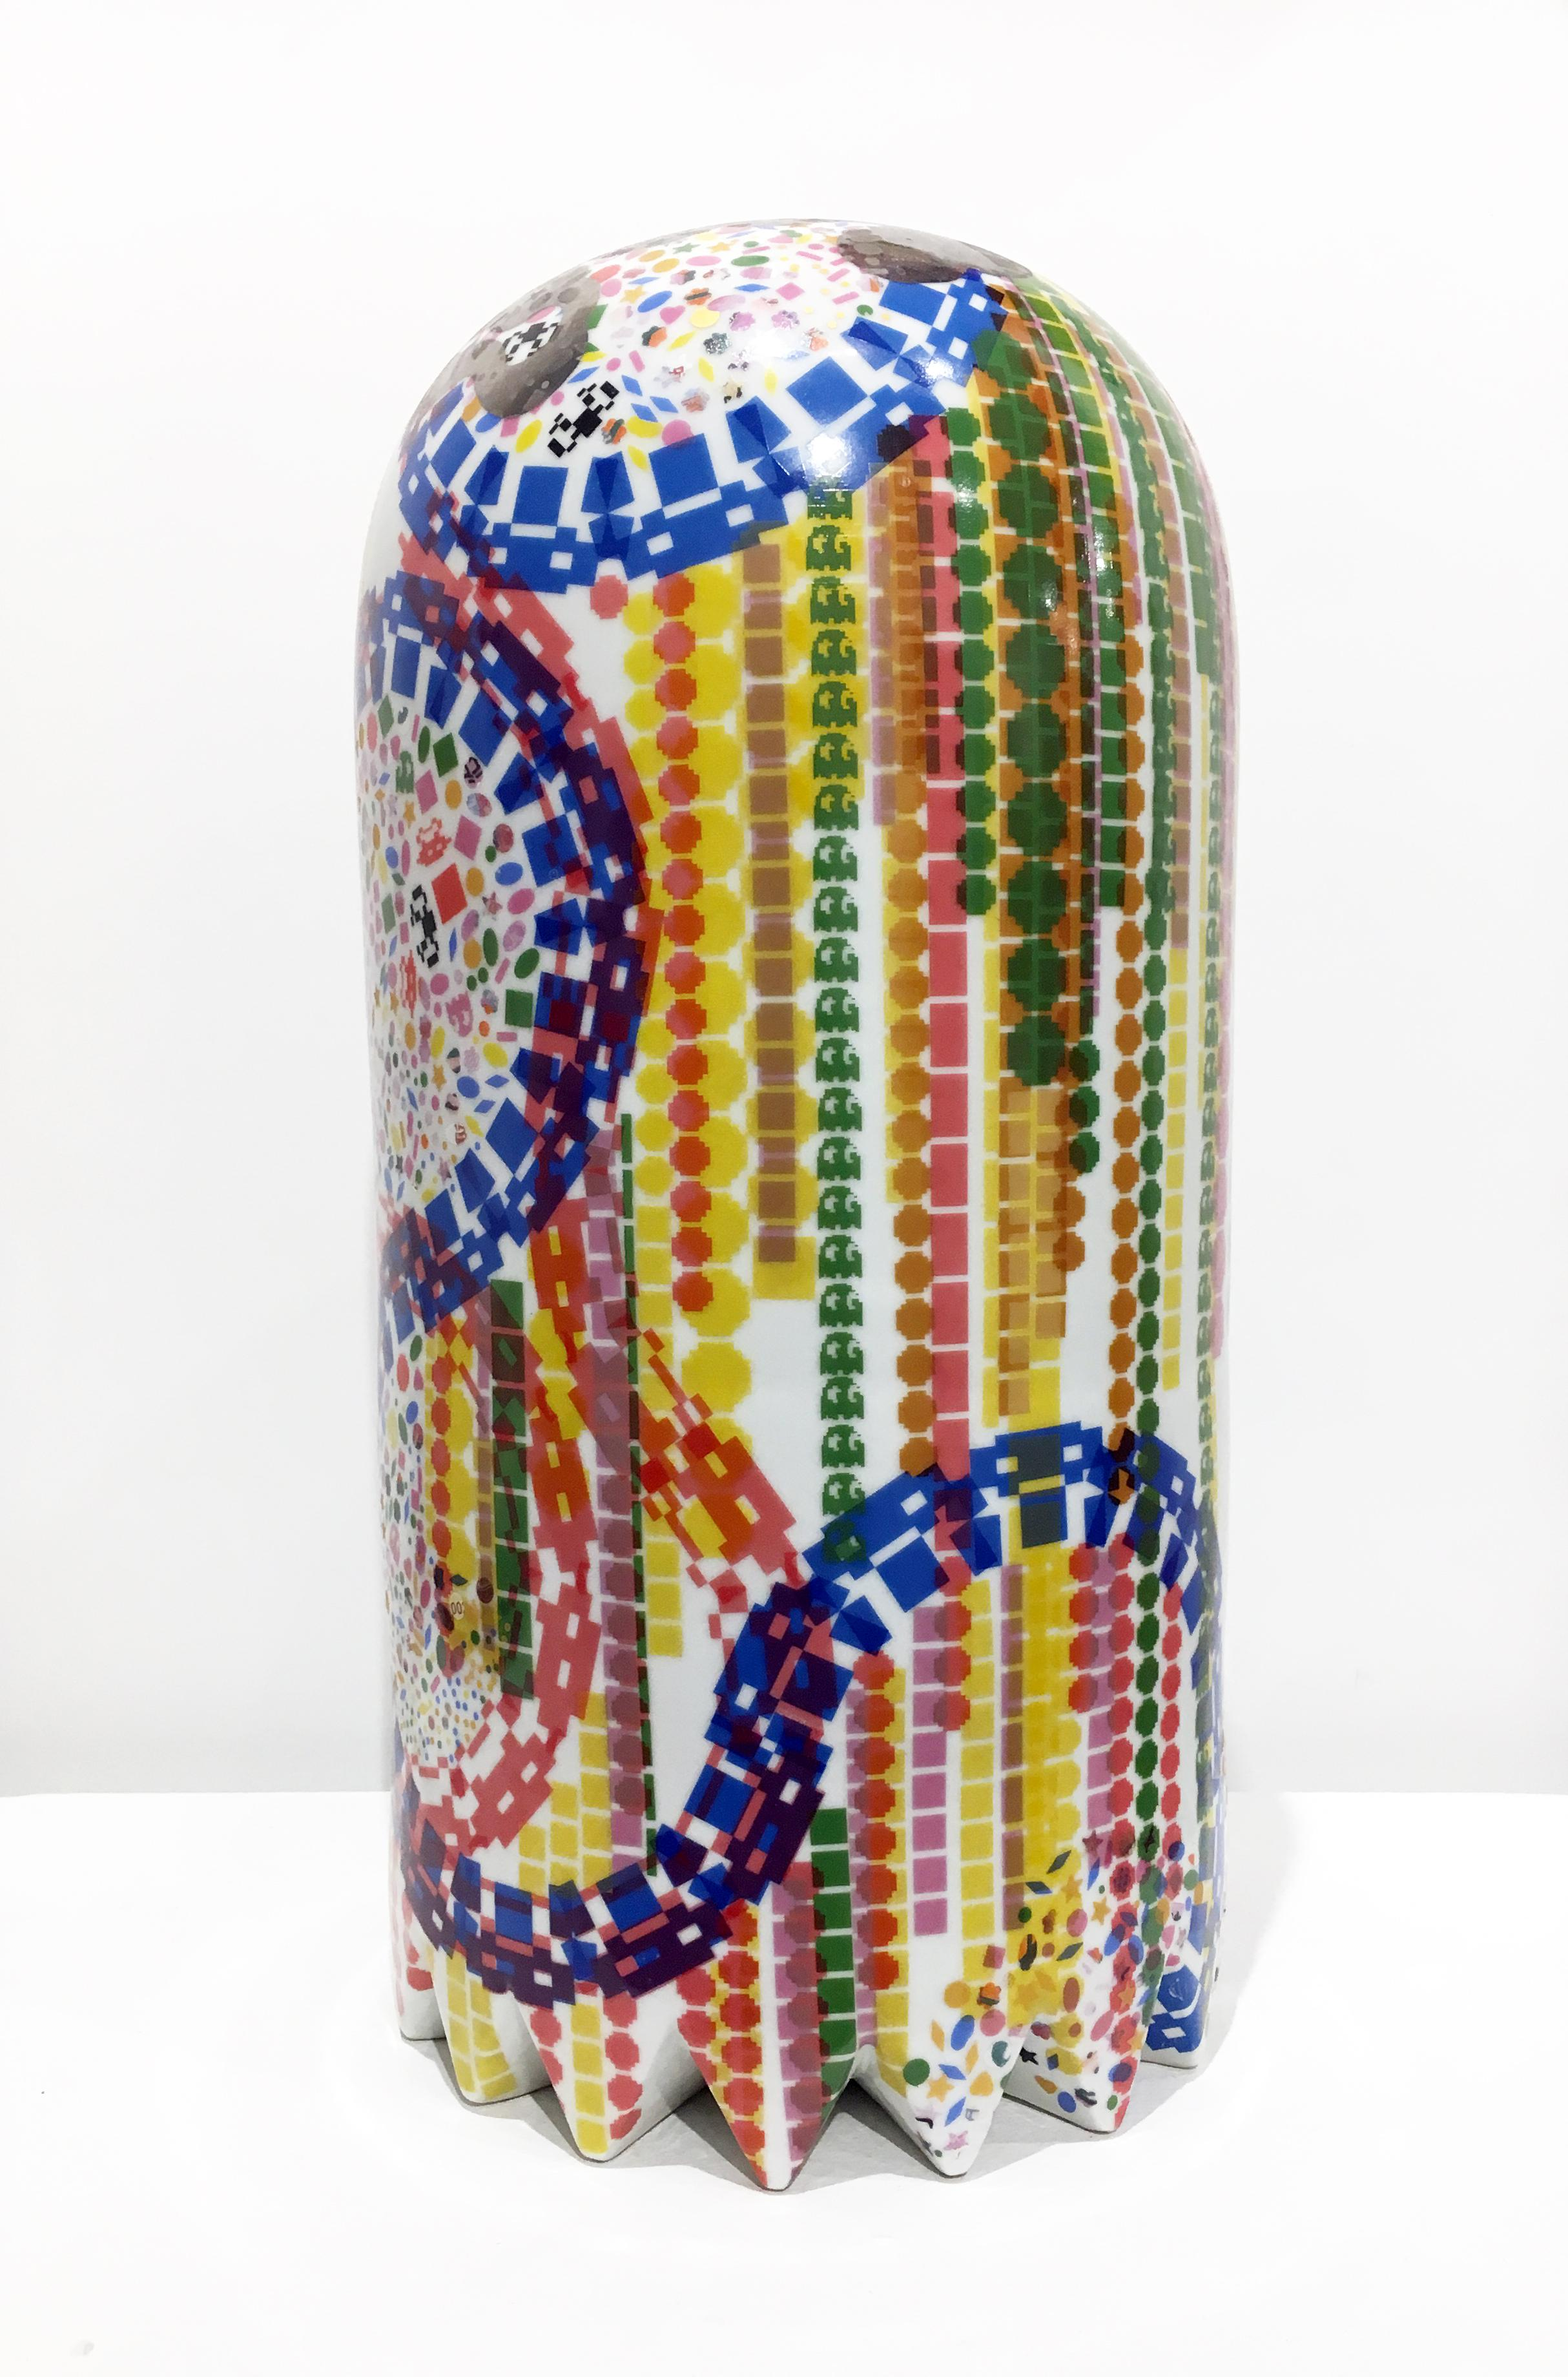 Contemporary Porcelain Sculpture with Intricate Ceramic Decals, Colorful Pattern